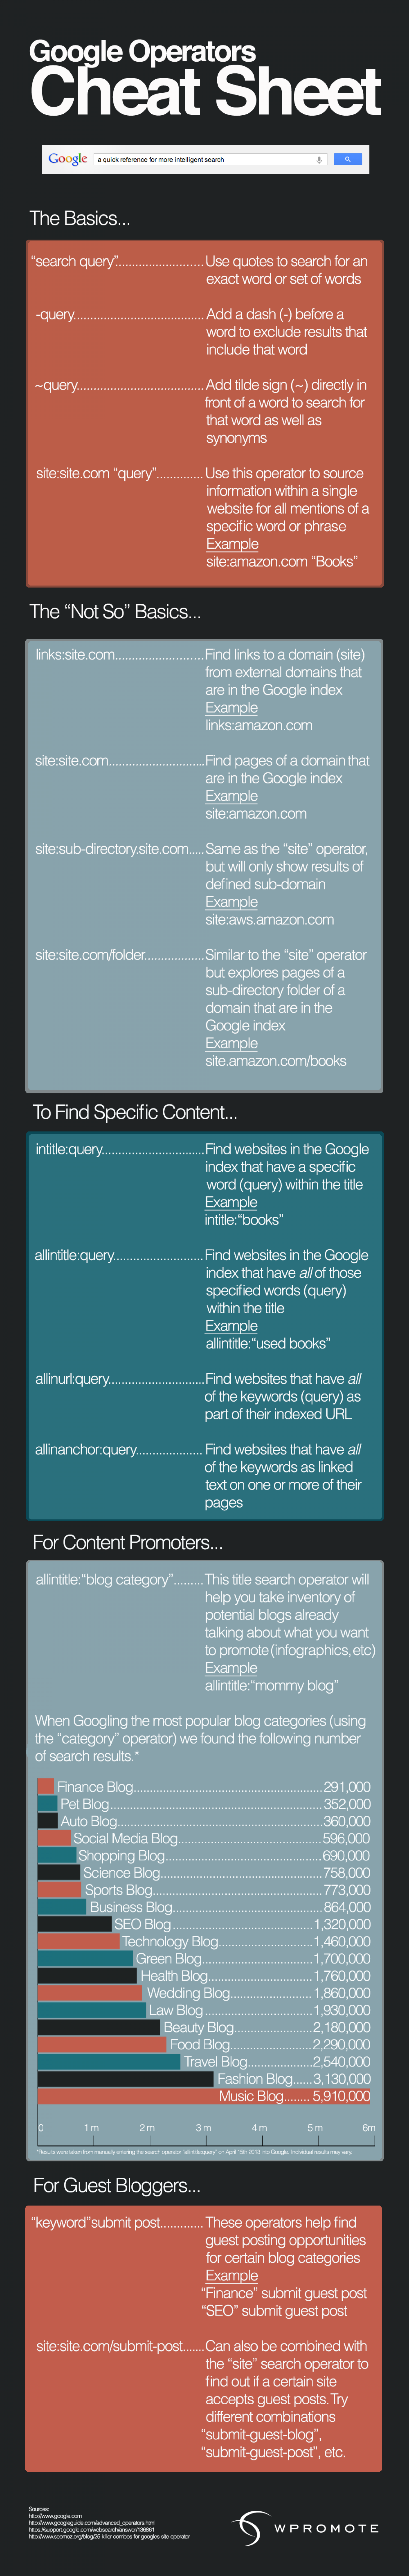 Google Operator Cheat Sheet For Content Marketers Infographic